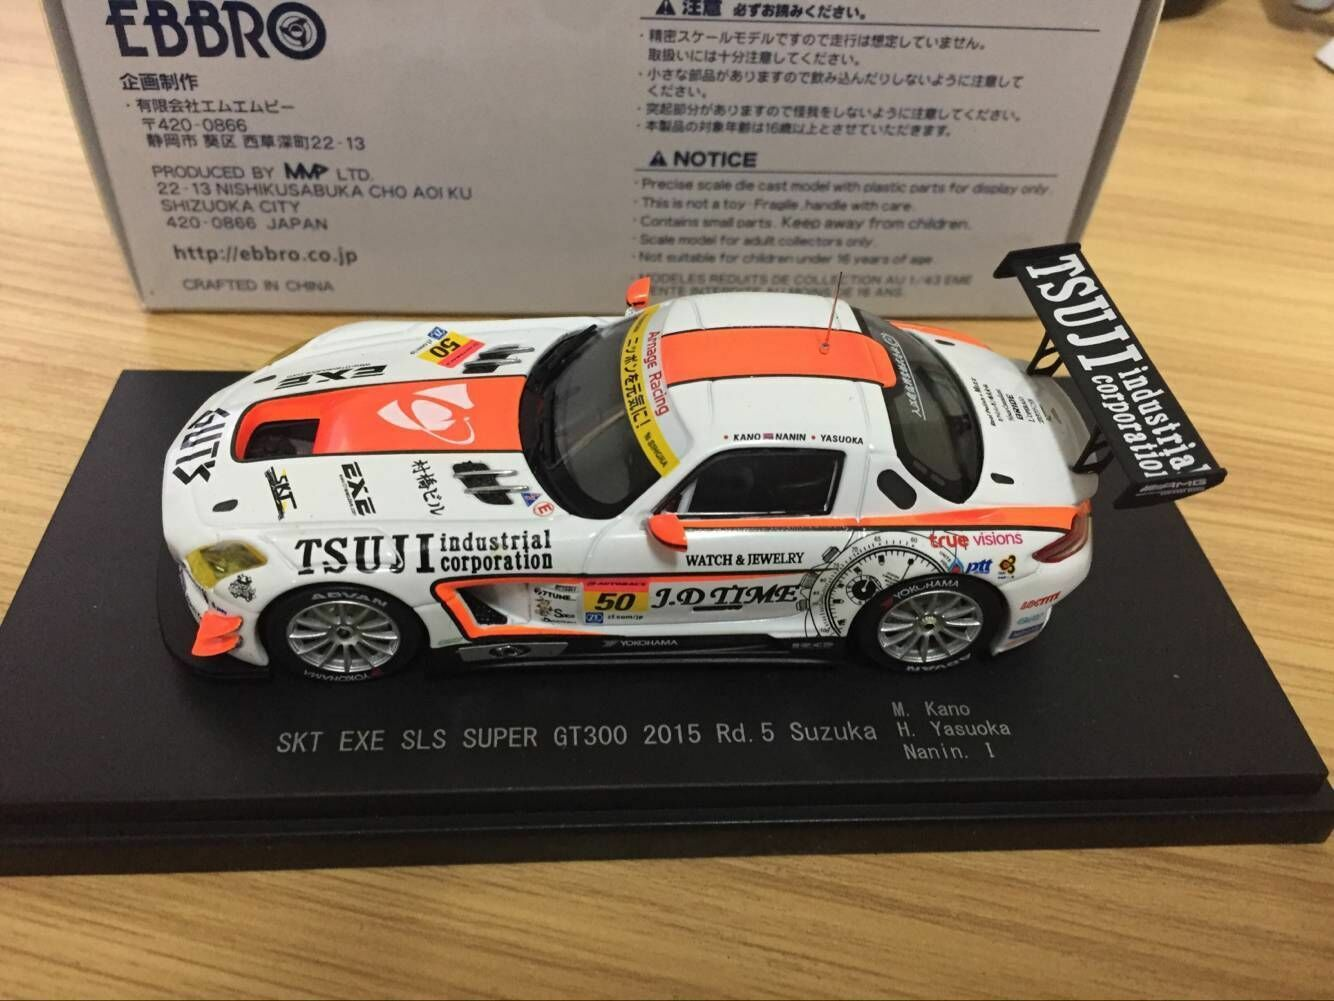 Ebbro Skt Exe Sls Super GT300 2015 Rd.5 Suzuka No.50 1 43 Scale Model Car